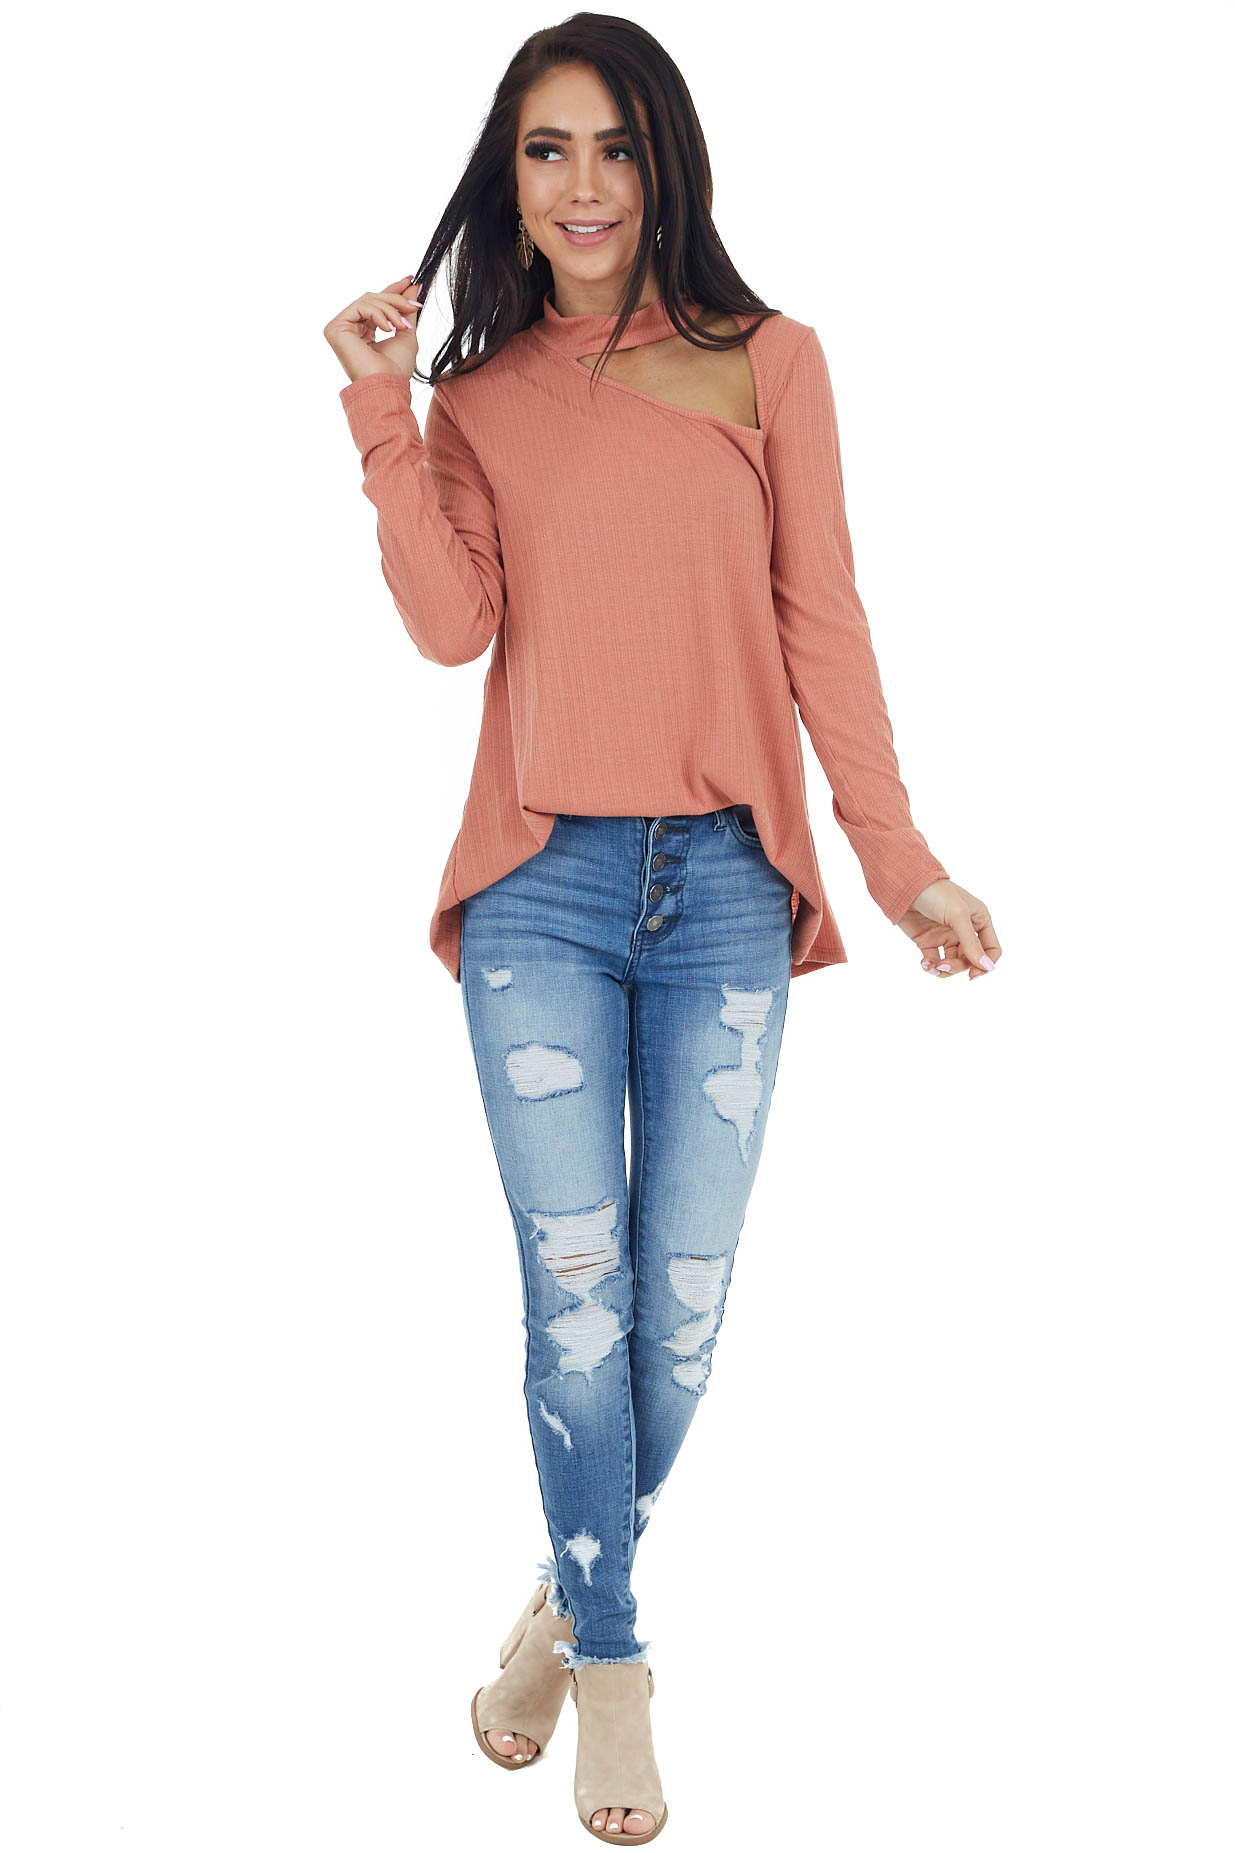 Terracotta Long Sleeve Stretchy Knit Top with Cut Out Detail